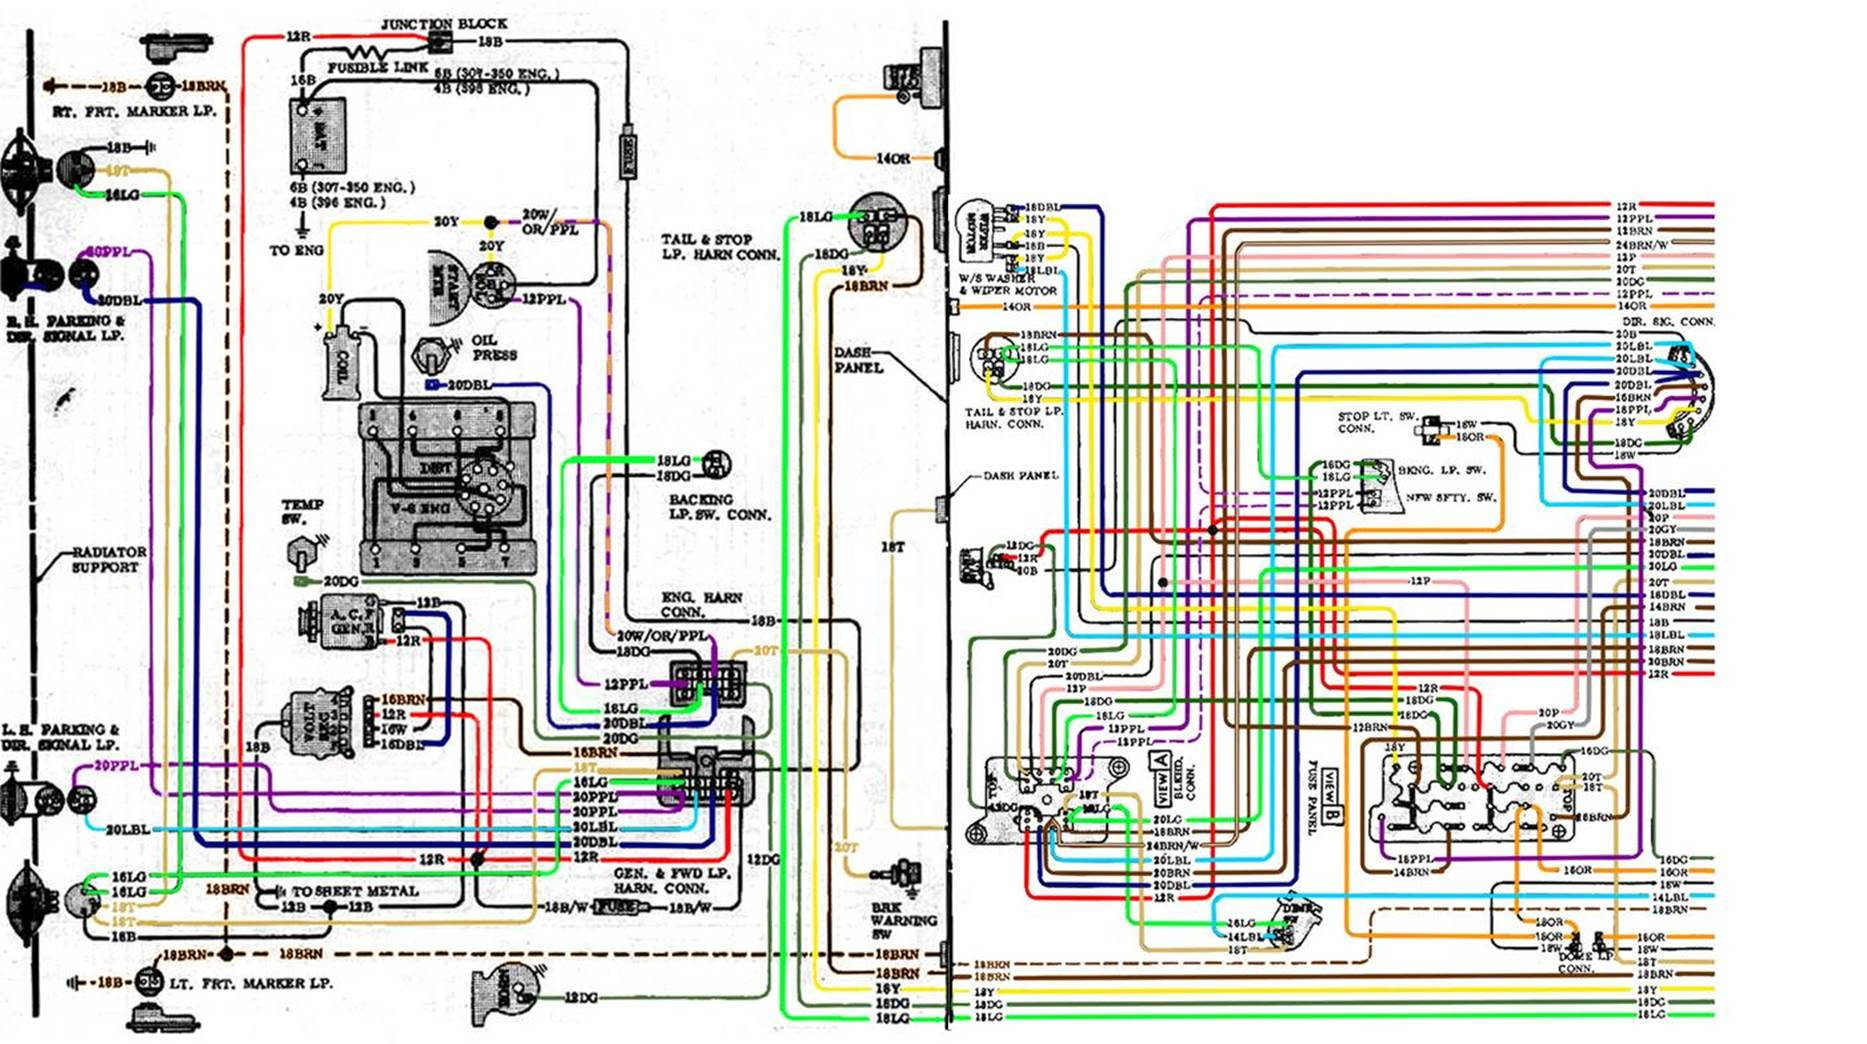 image002 67 72 chevy wiring diagram 1967 gmc pickup wiring diagram at gsmx.co